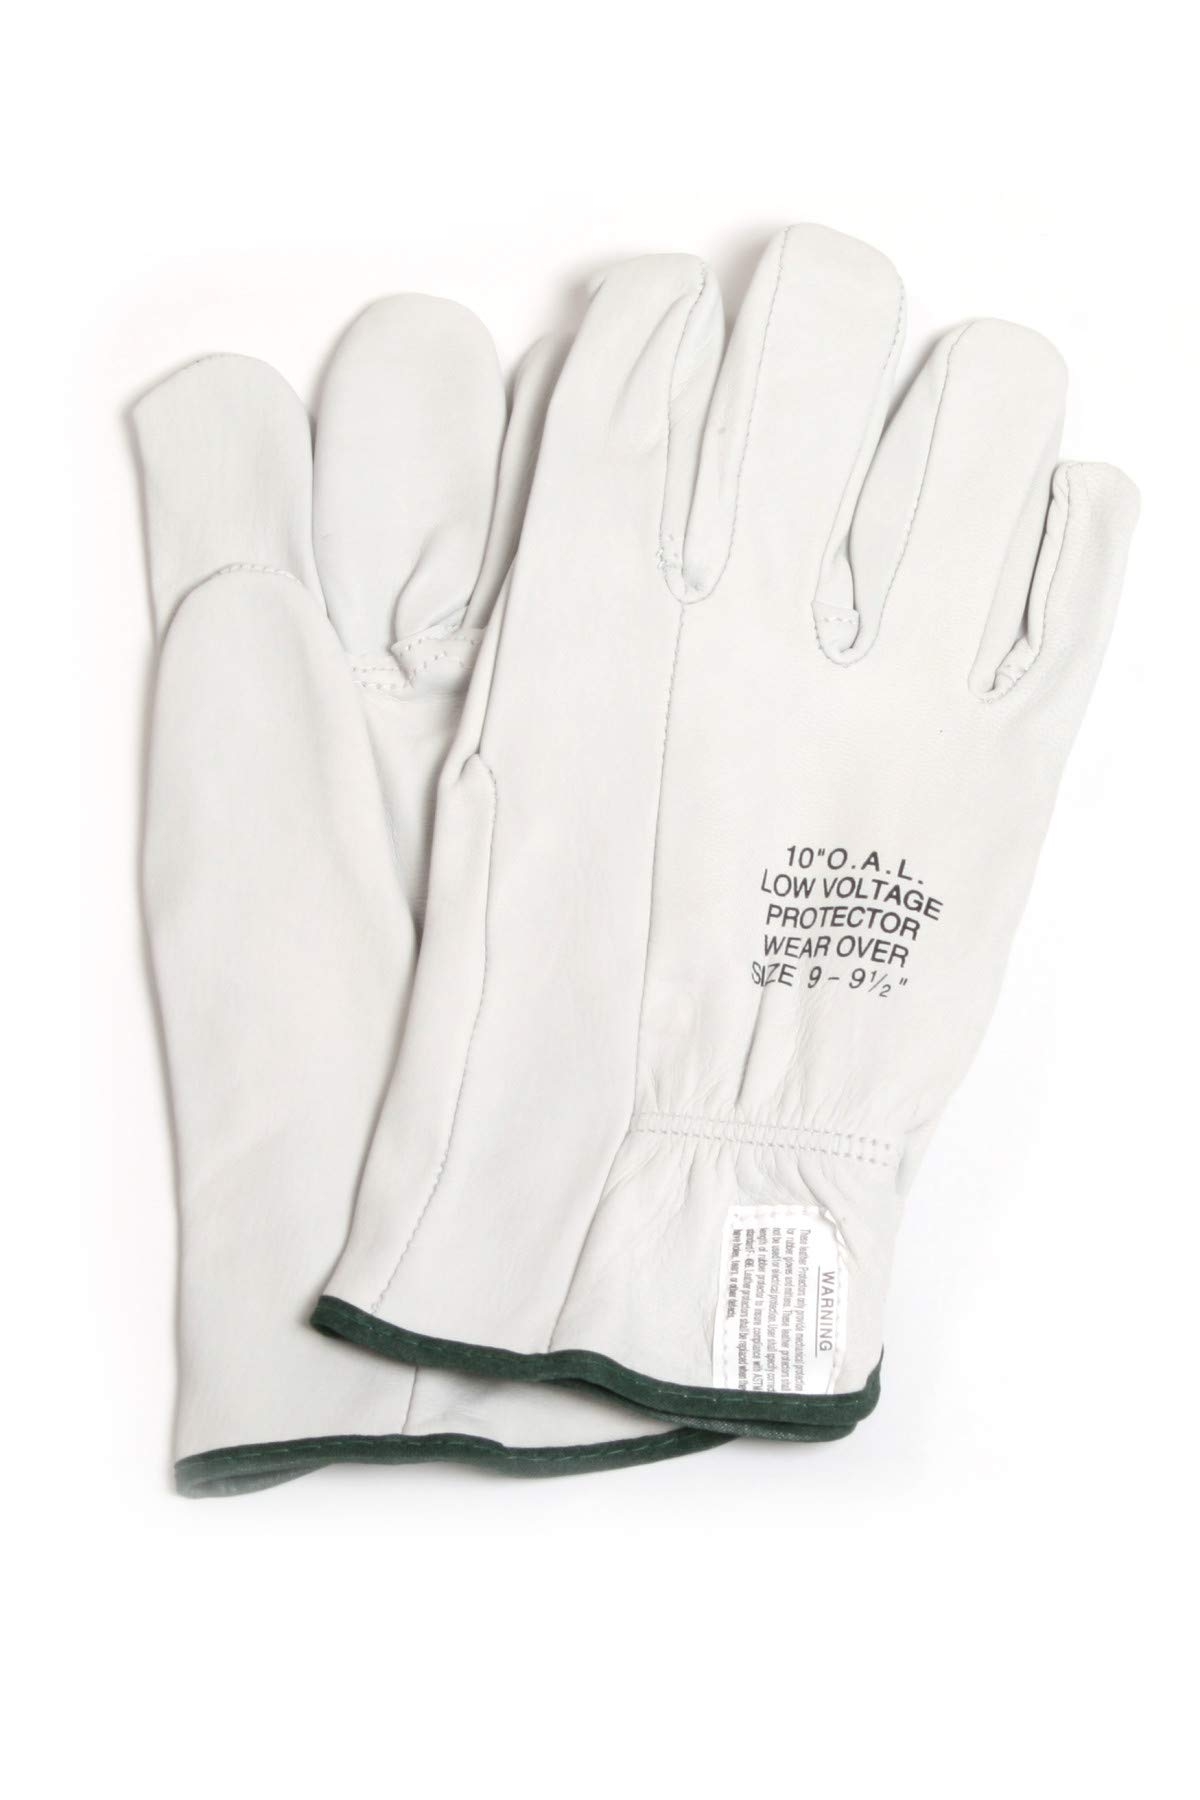 National Safety Apparel DWH10L9 Leather Protectors, 10'', Size 9 Gloves, White